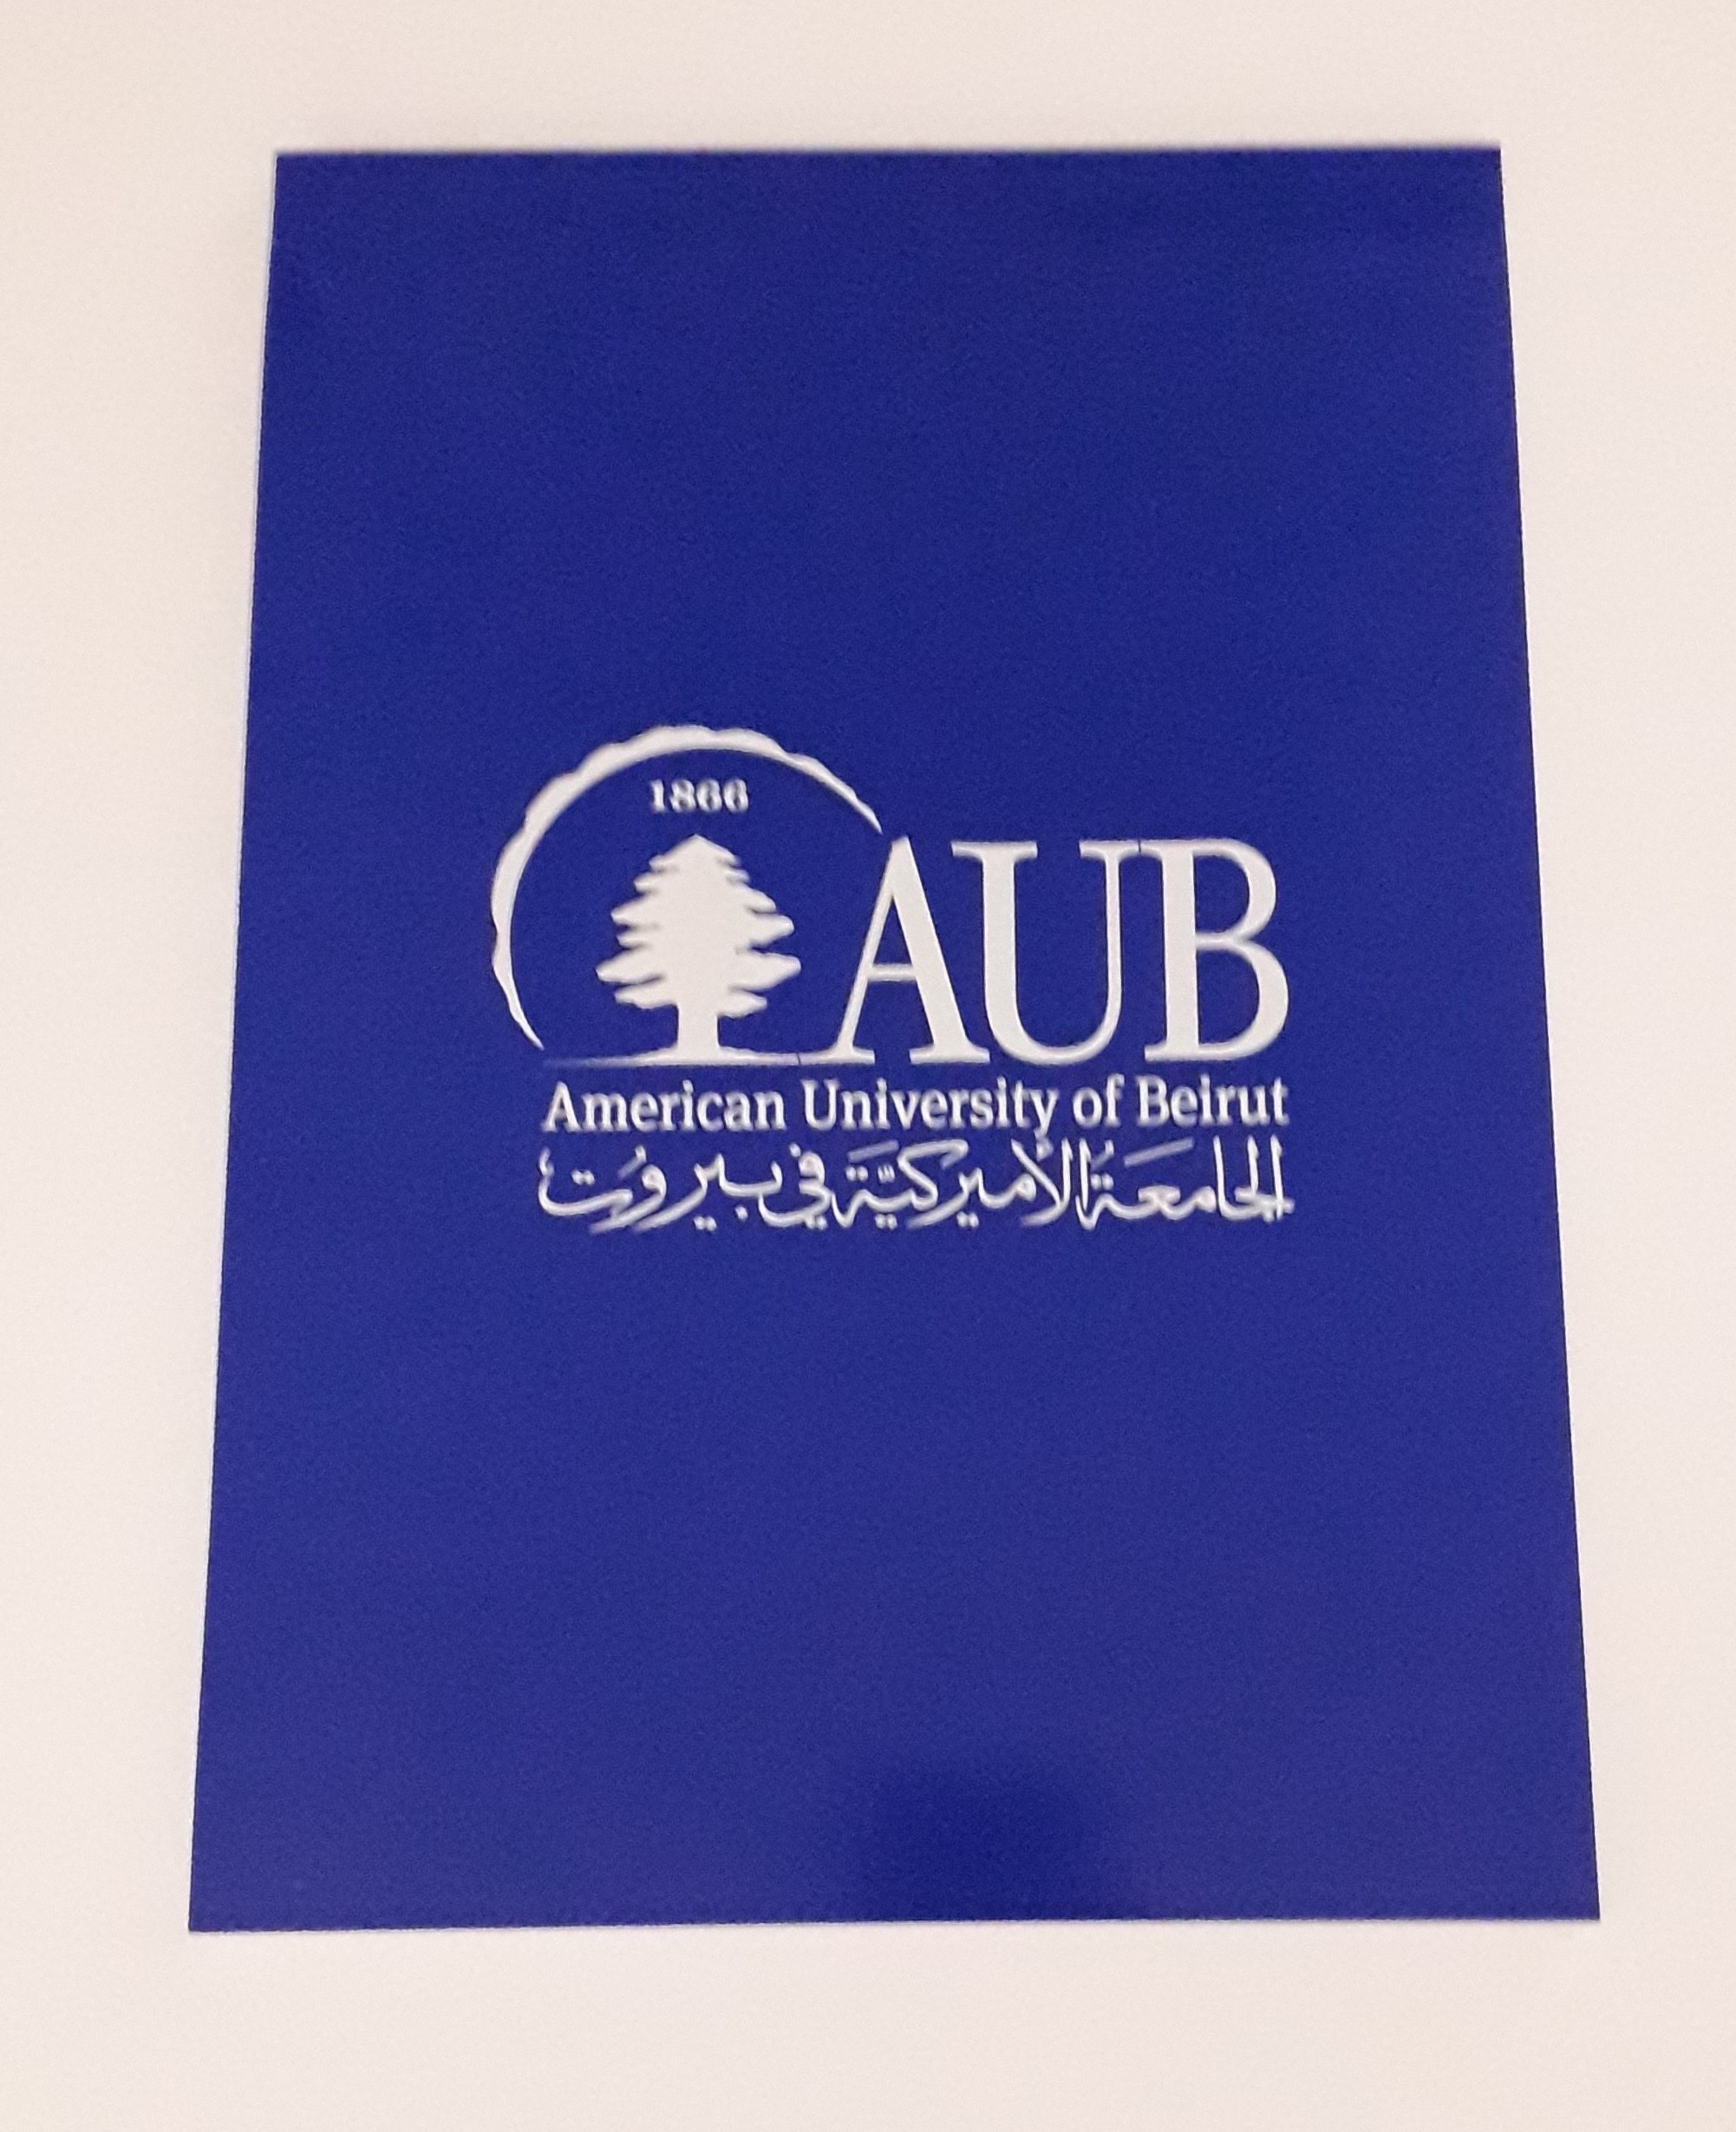 AUB Notepad A4 Lined 80SH 70G